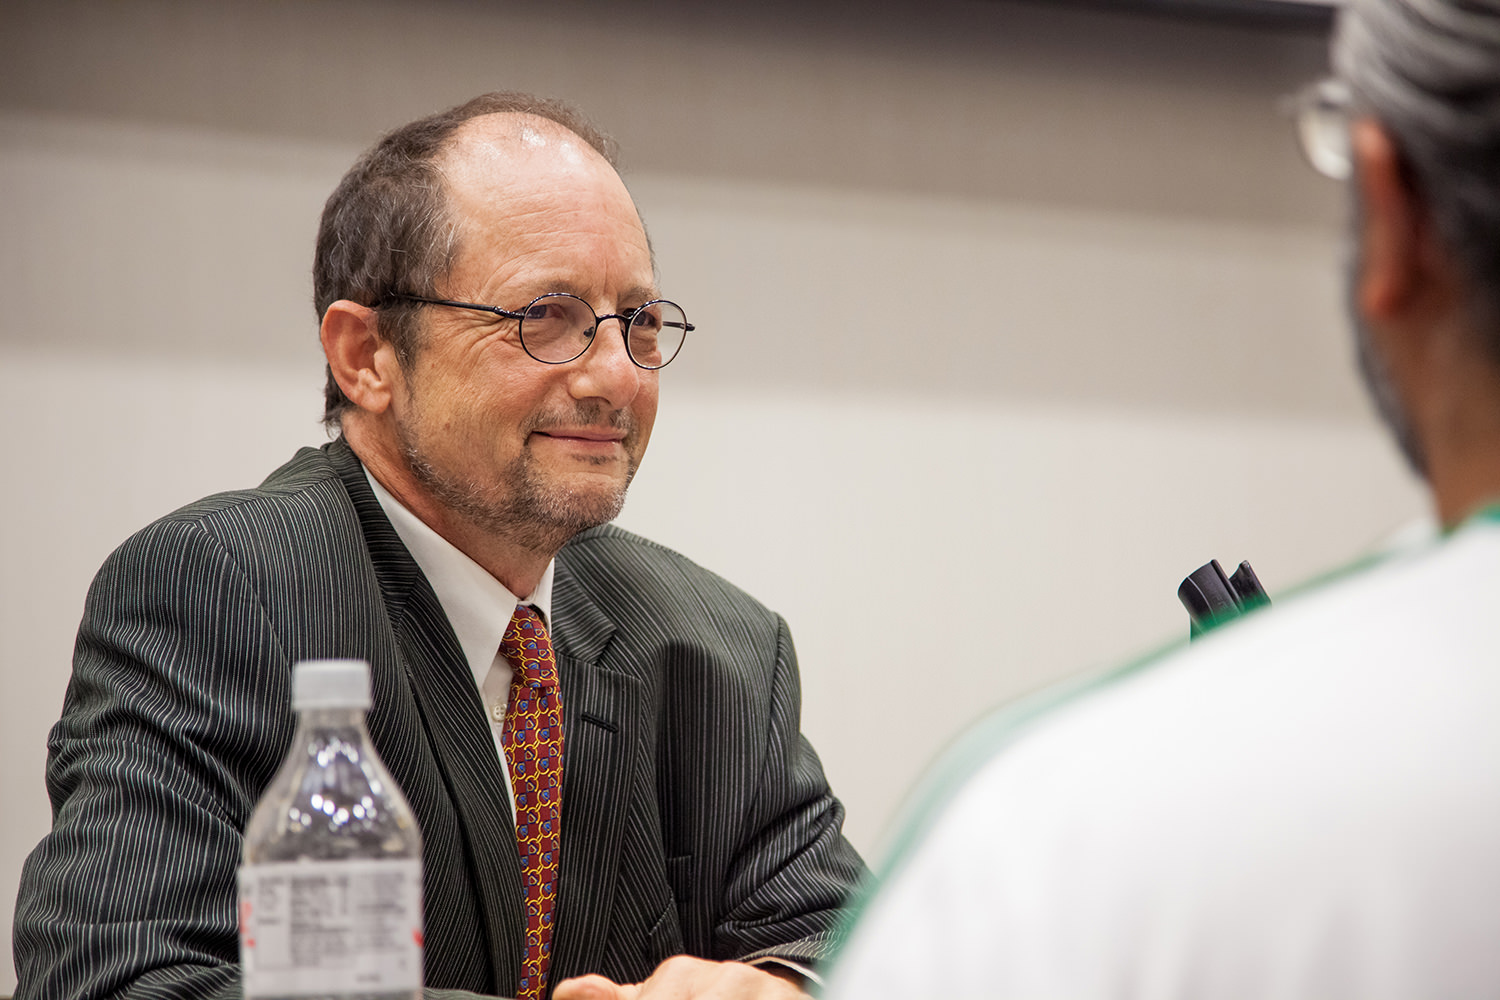 Bart Ehrman Smiling